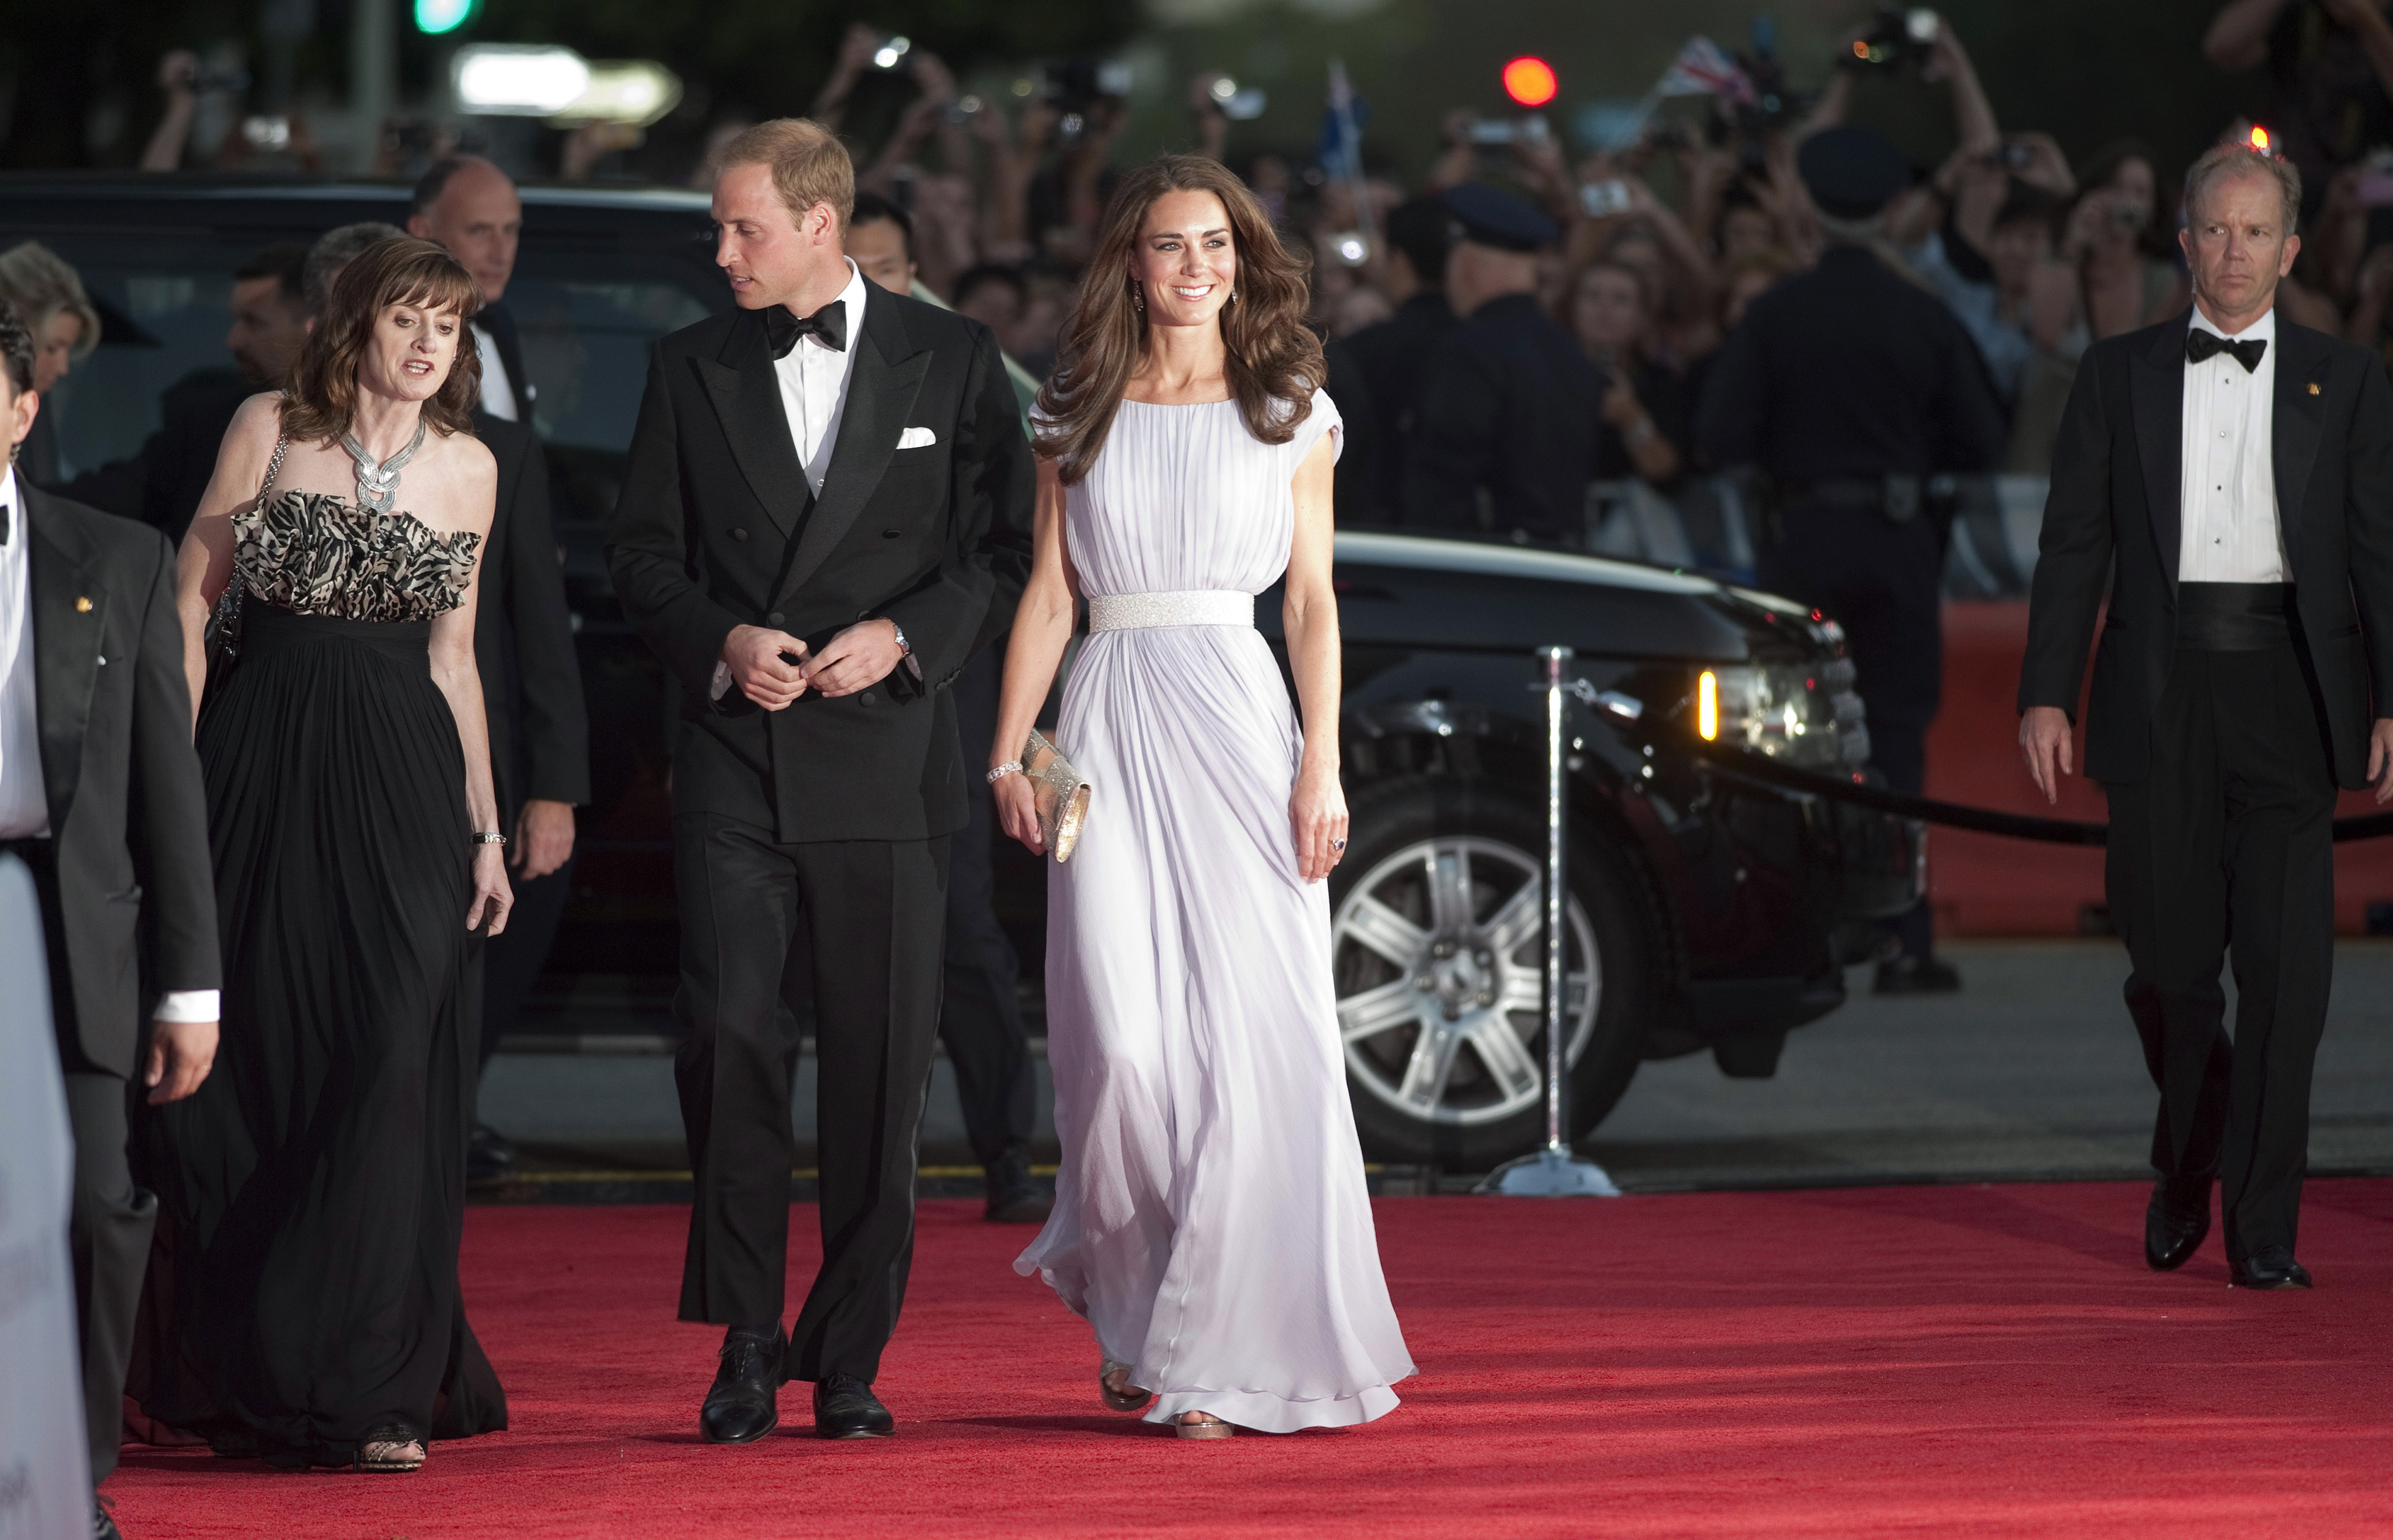 <strong>A Brit Beauty to Watch</strong>                                   The Duchess wore a lilac Alexander McQueen gown to a British Academy of Film and Television Arts event in Los Angeles on July 10, 2011. Prince William, who is president of BAFTA, delivered remarks at the ceremony, which honored rising British actors. The couple were in California as part of their first North American tour.